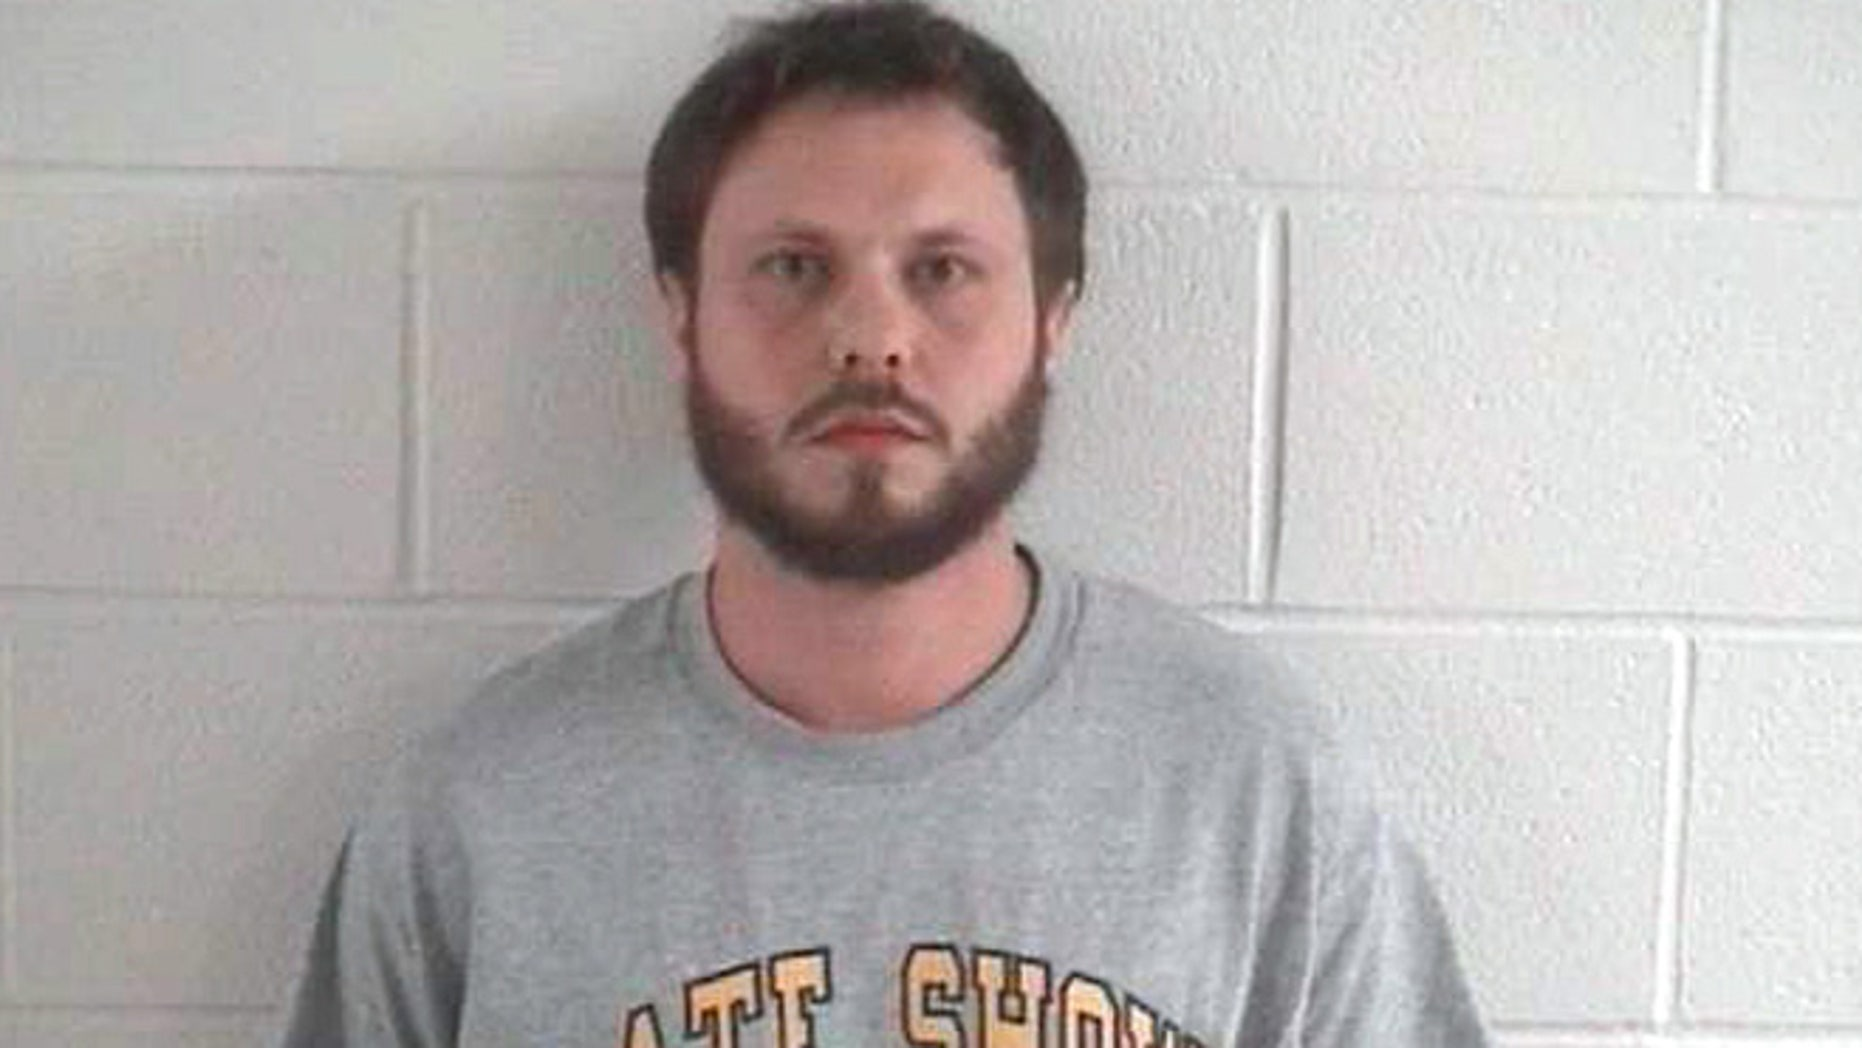 This undated photo provided by the Ashland County Sheriff Office shows Elliot Gornall. (AP)